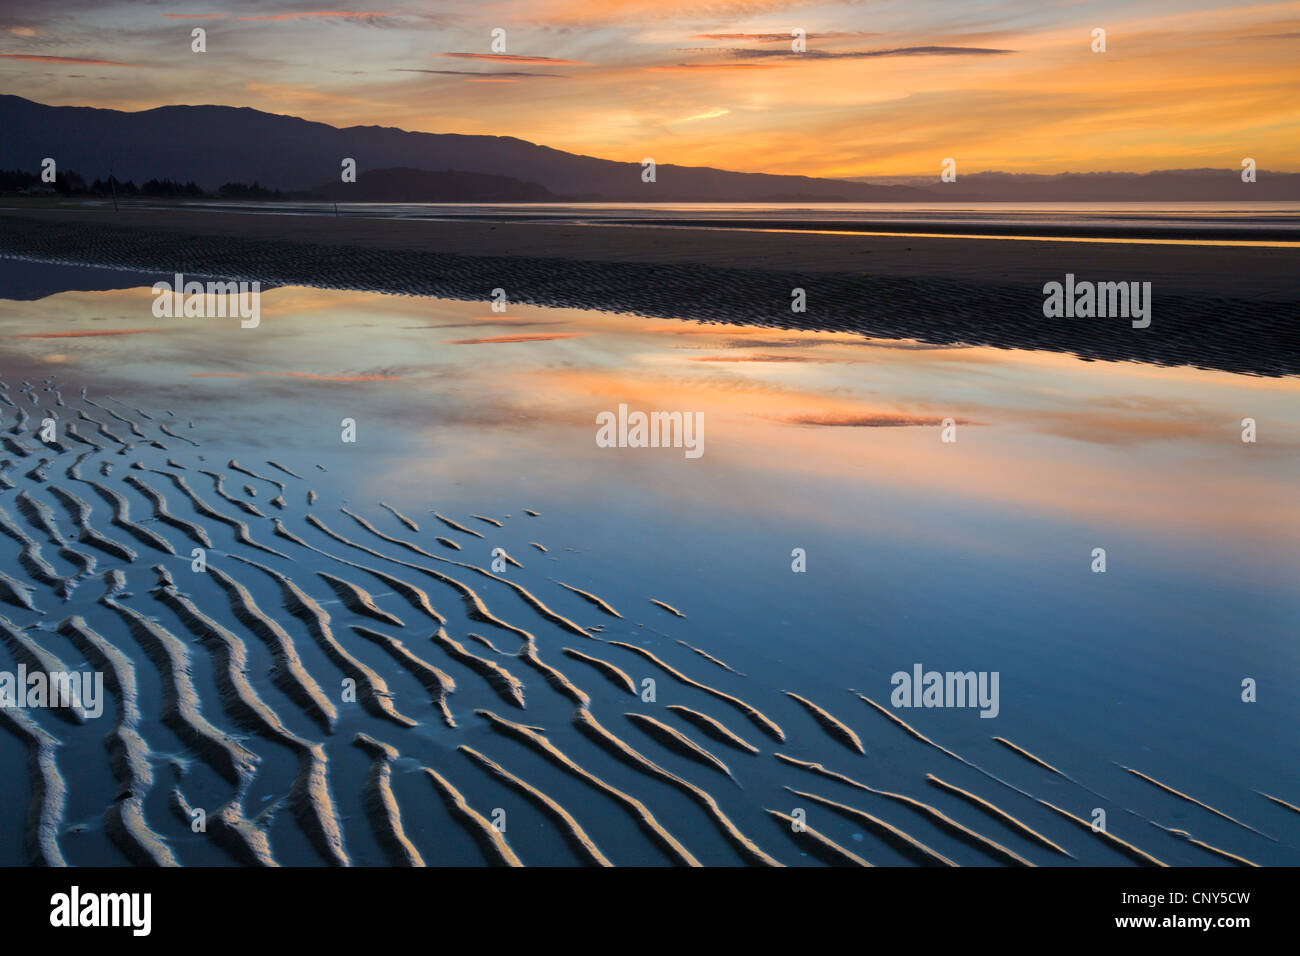 Ripples of sand on Pohara Beach at sunset, Golden Bay, South Island, New Zealand. Autumn (May) 2007 - Stock Image